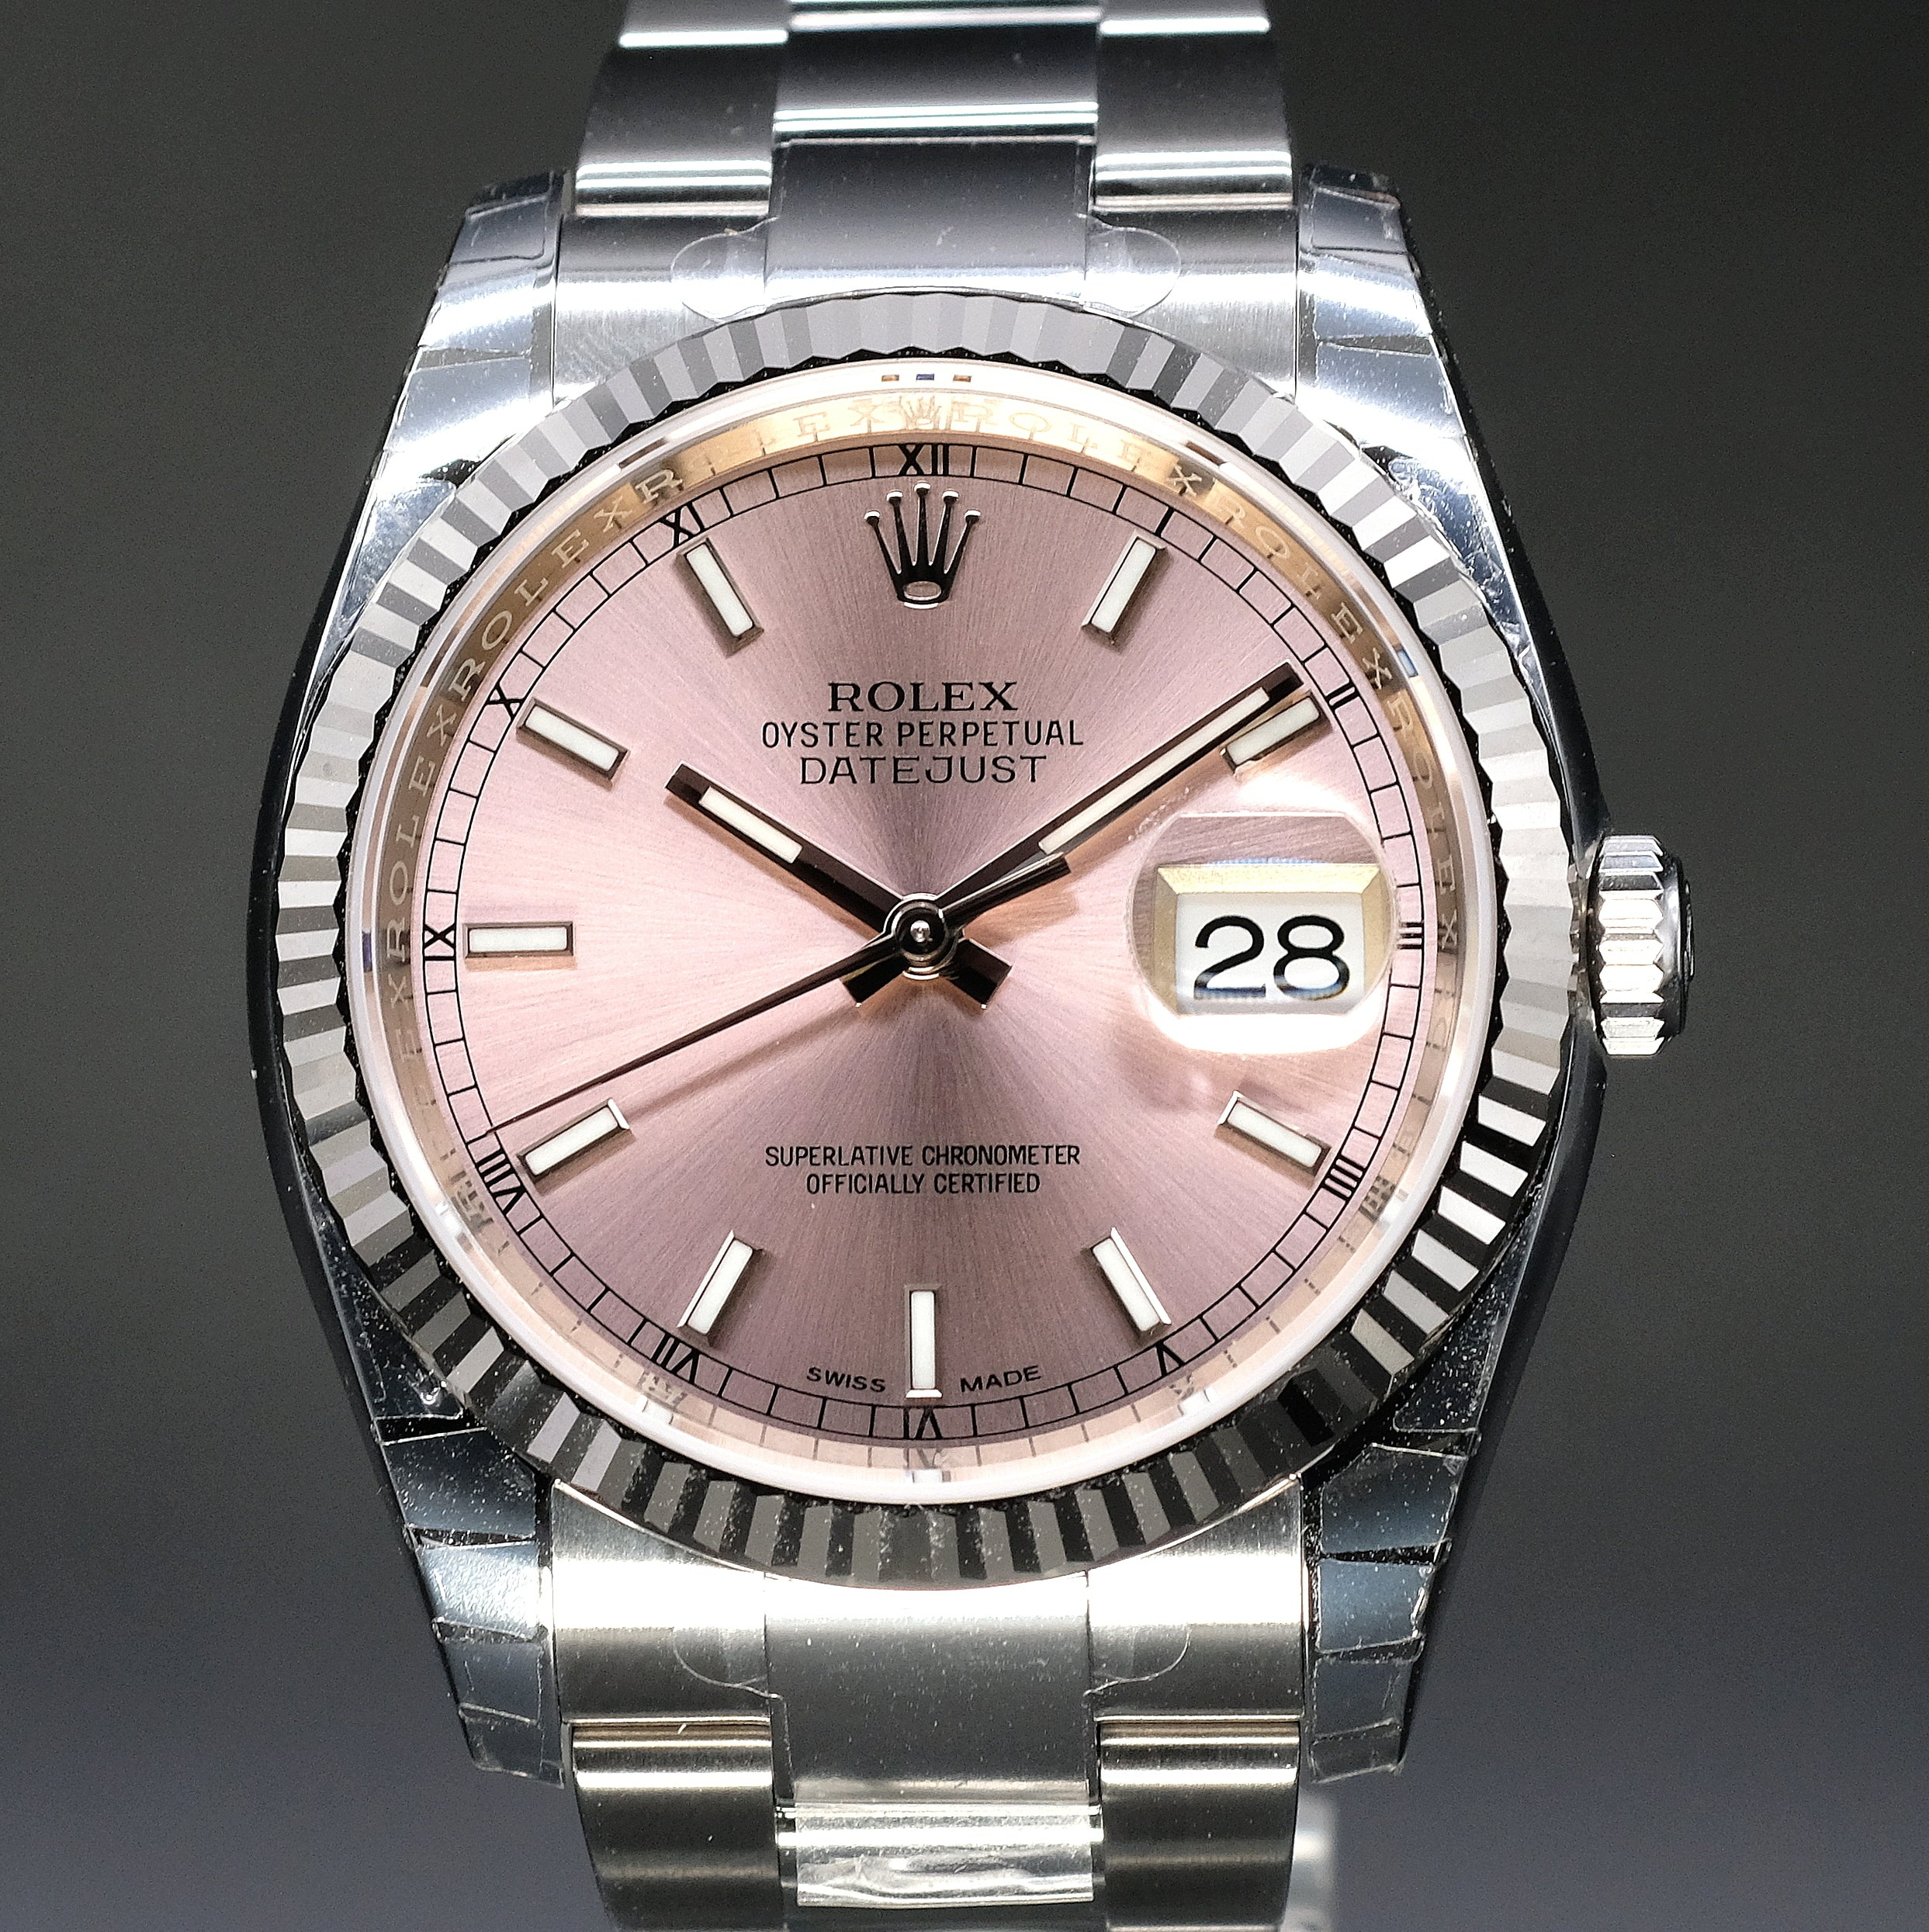 [Brand New Watch] Rolex Datejust 36mm 116234 Pink Index Dial (Oyster Bracelet)